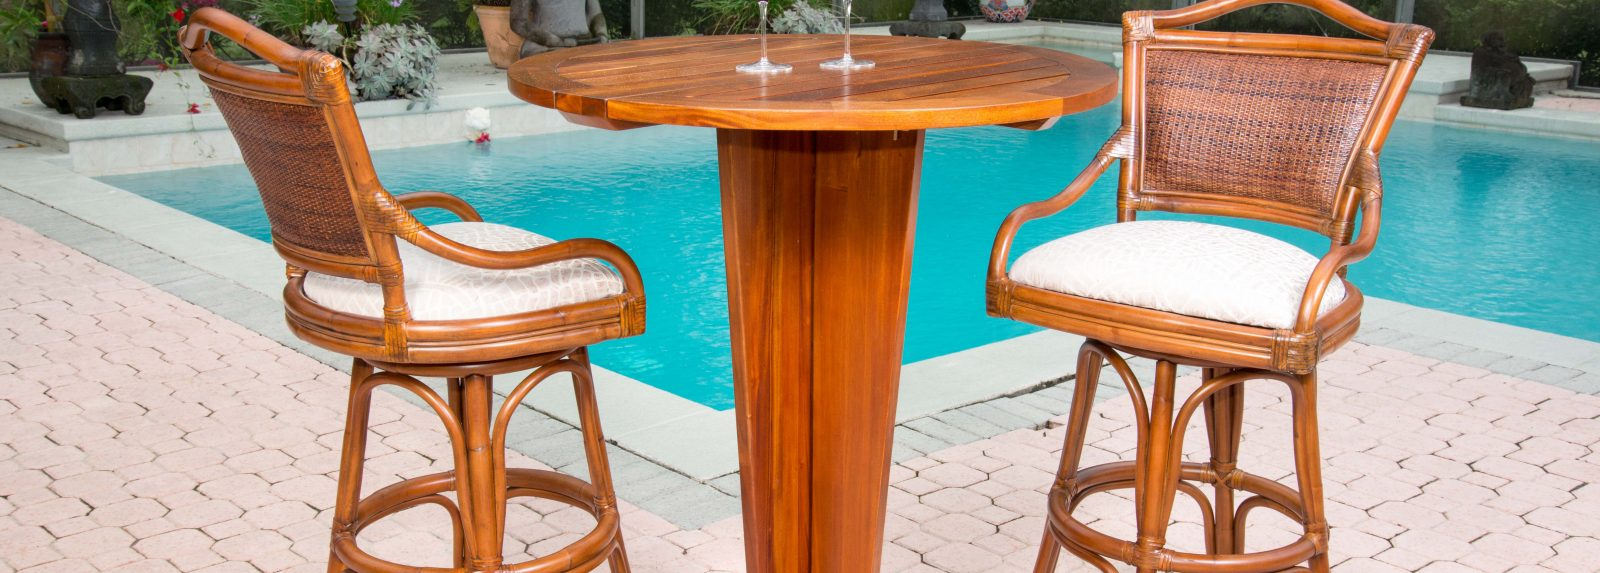 Wicker U0026 Rattan Furniture Store Orlando Florida   Dining Chairs Bar Stools